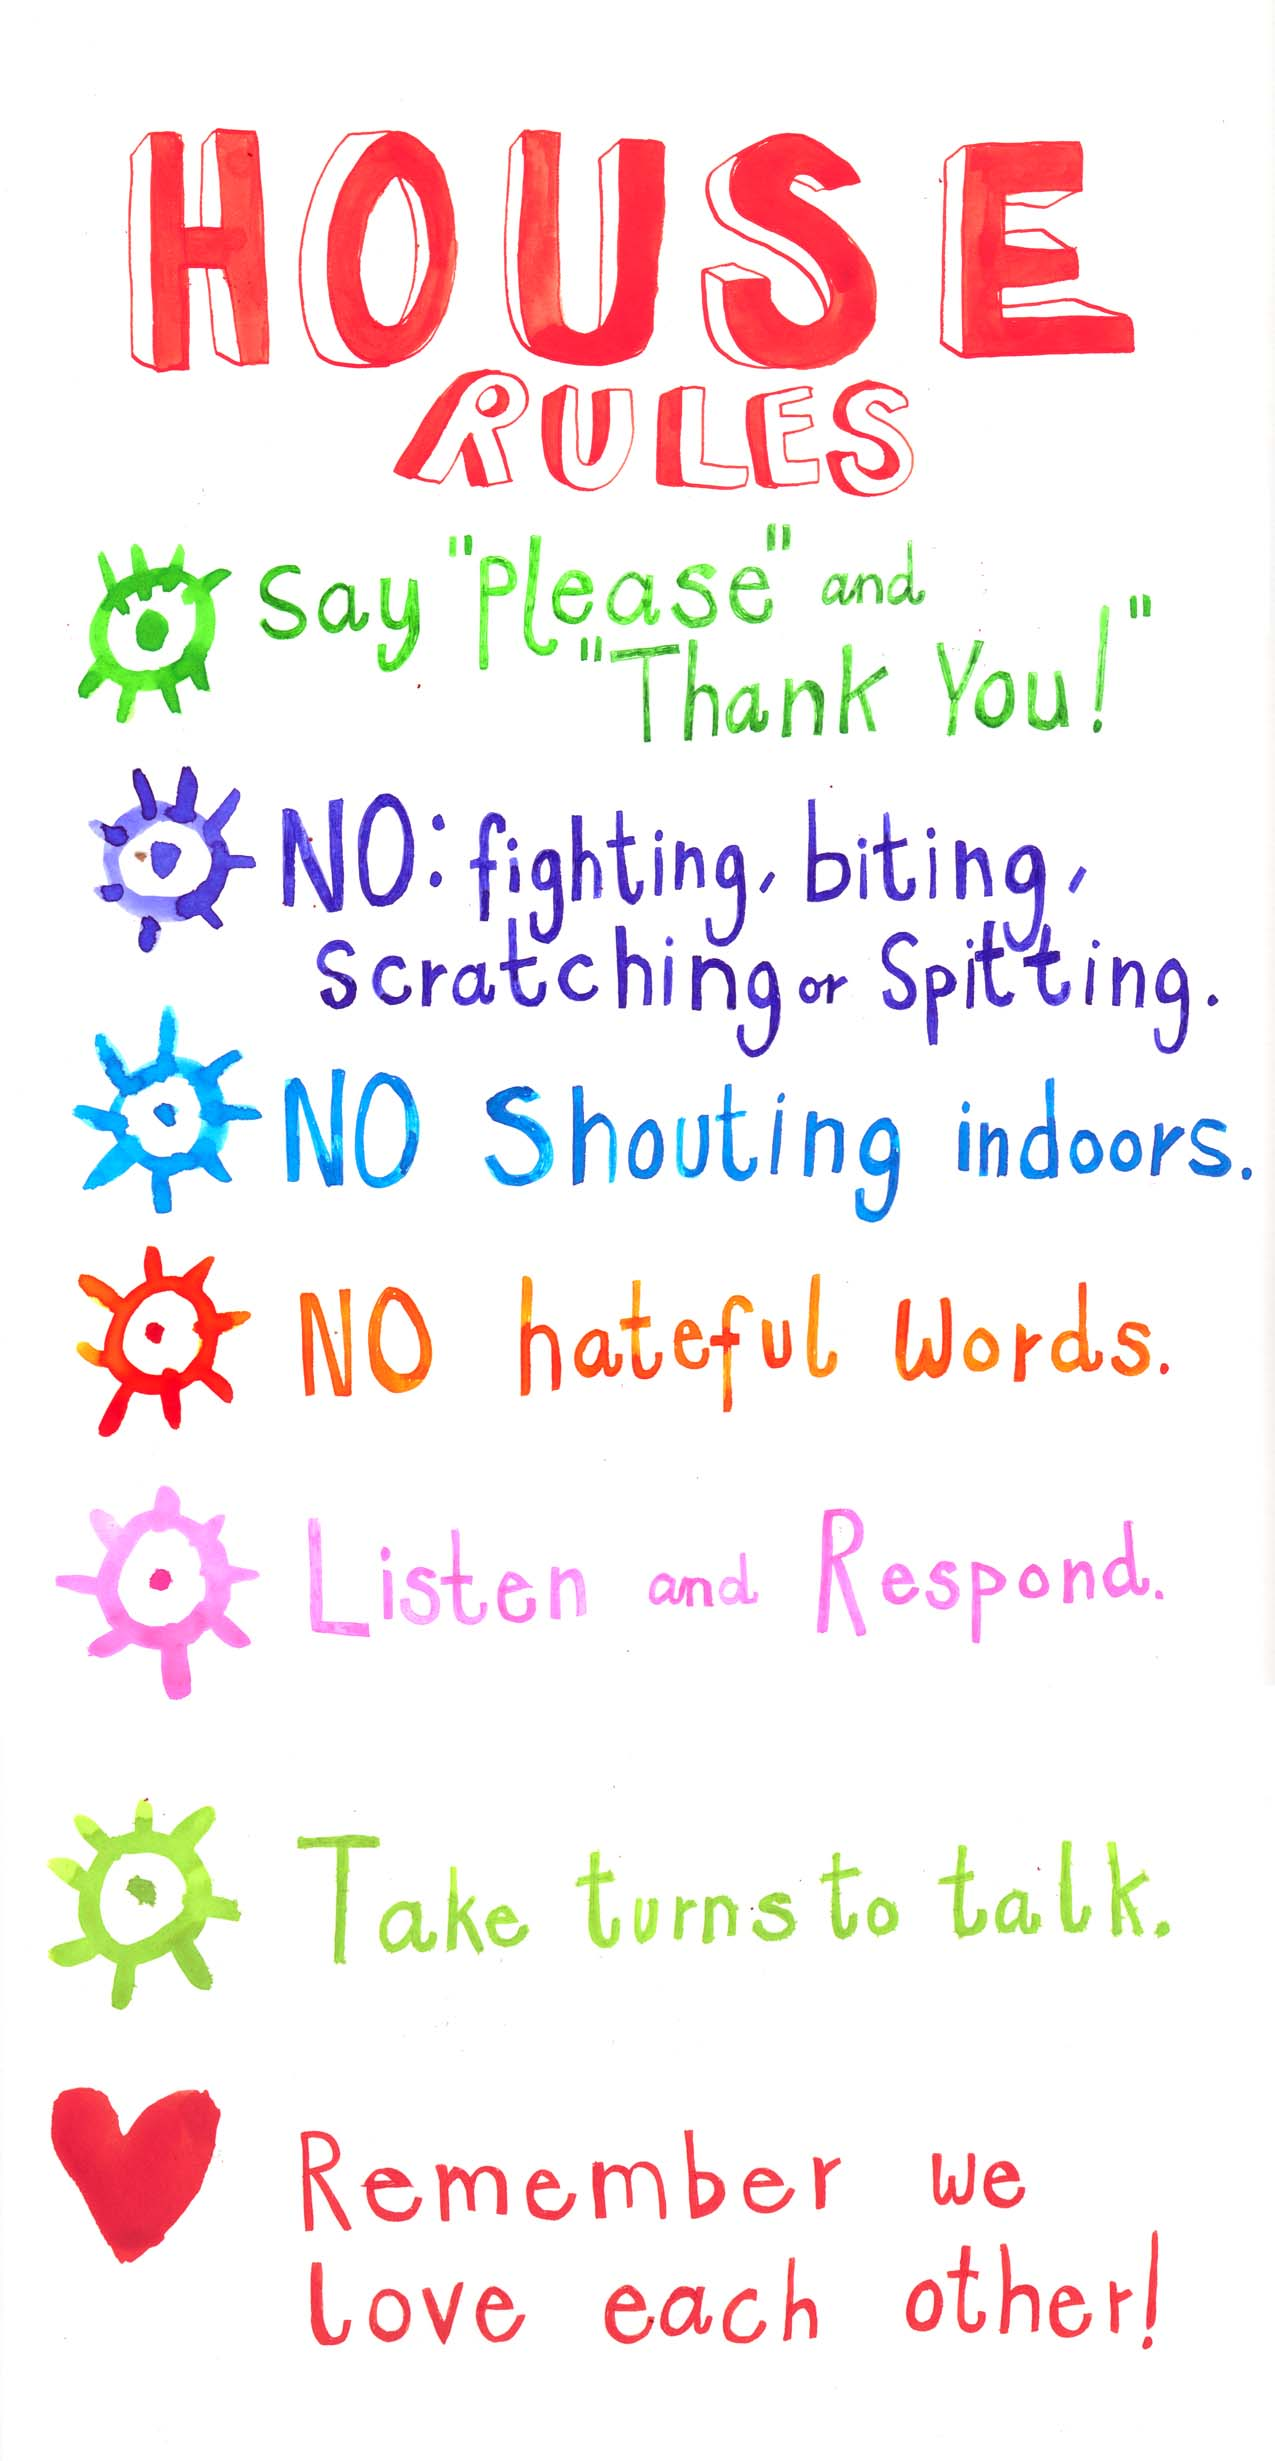 House rules rebecca bradley illustration for House rules chart template